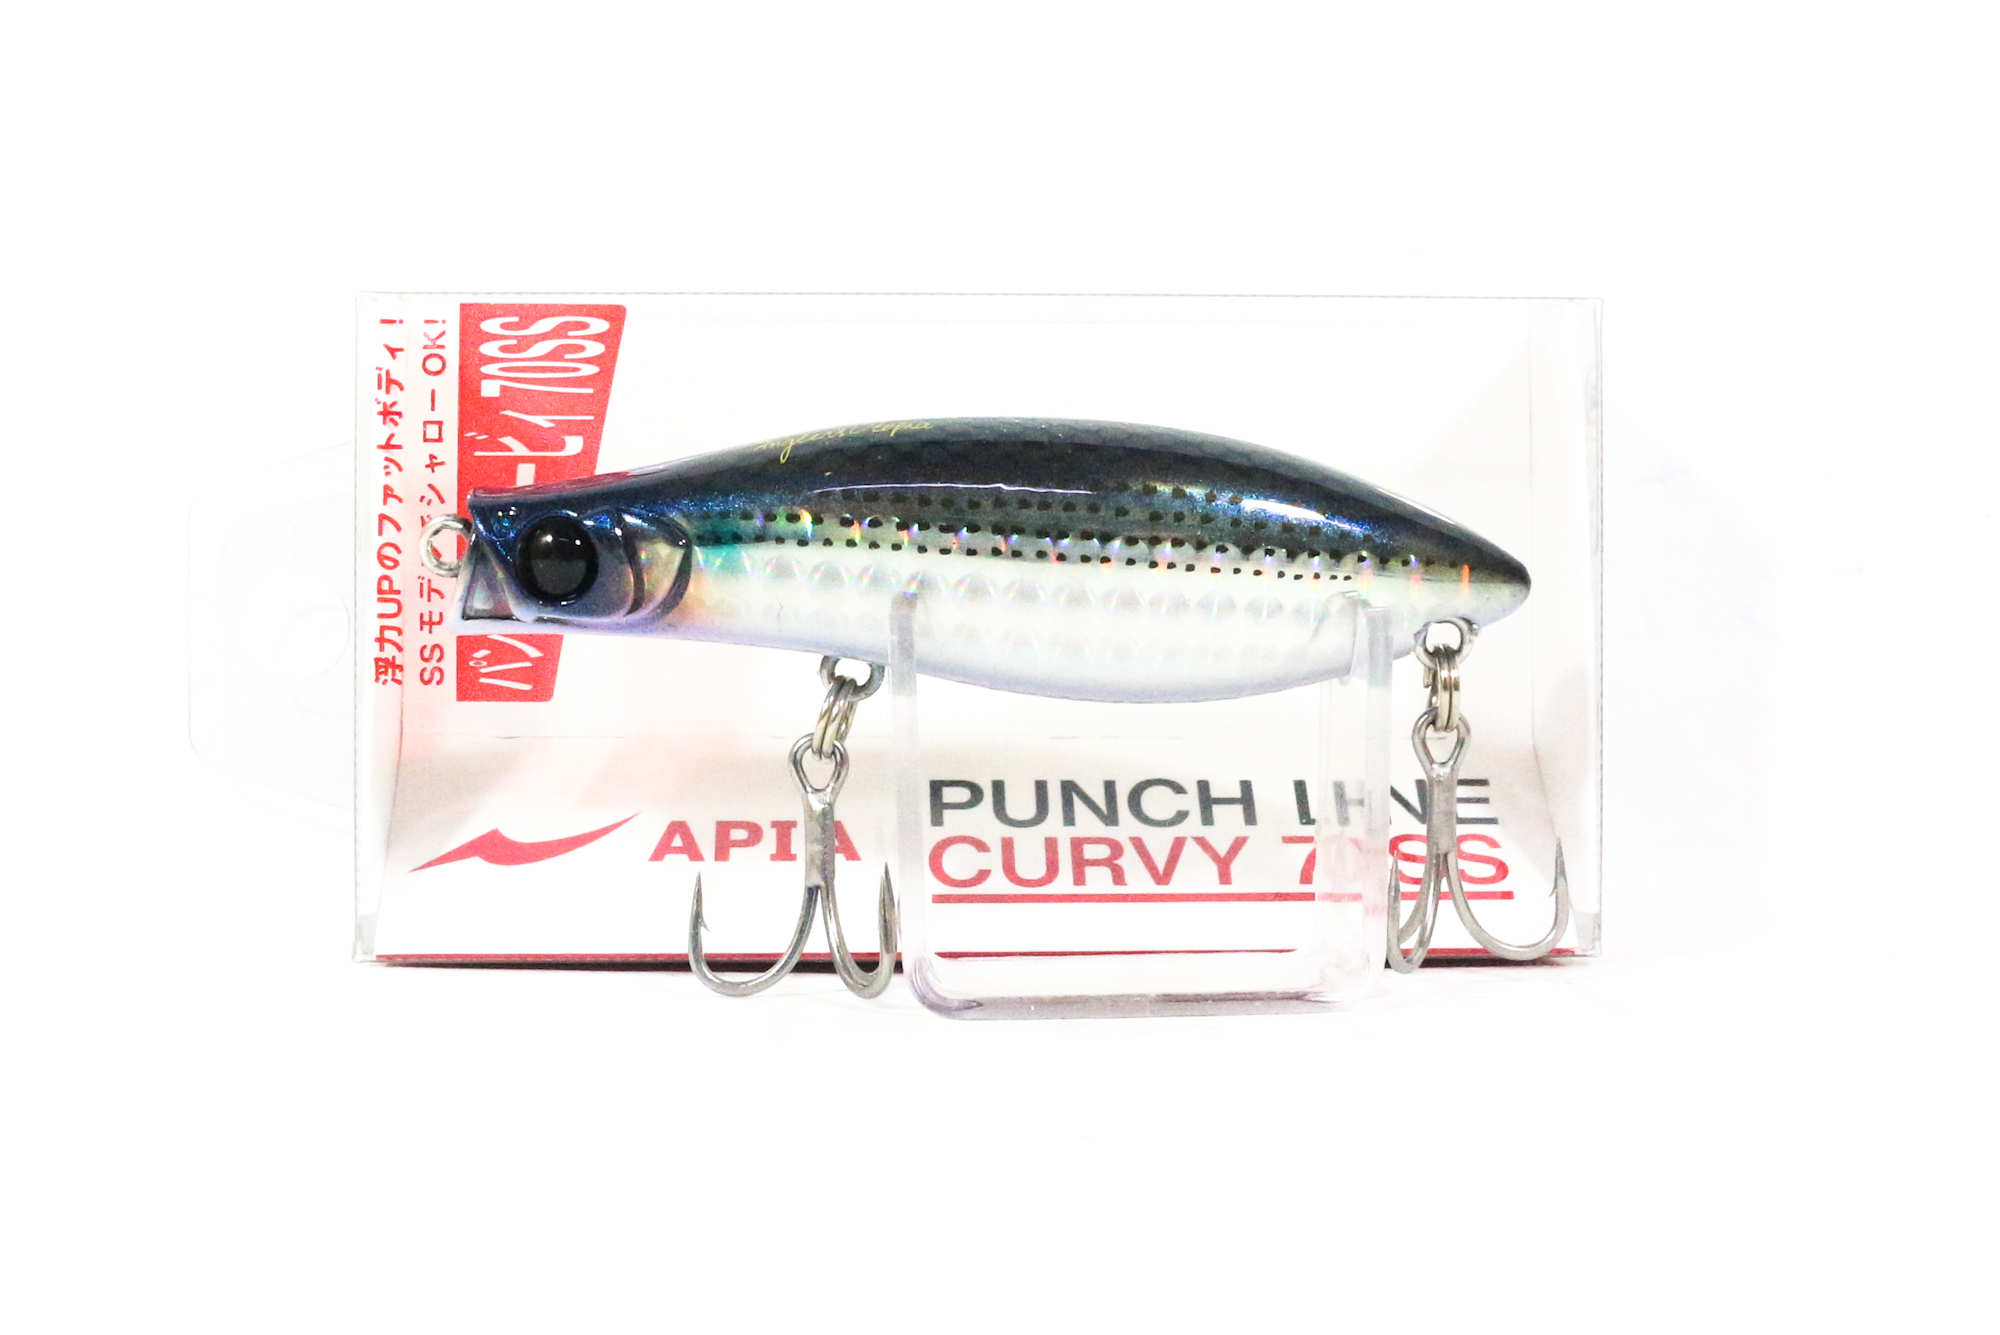 Apia Punch Line Curvy 70SS Pencil Sinking Lure 04 (0030)